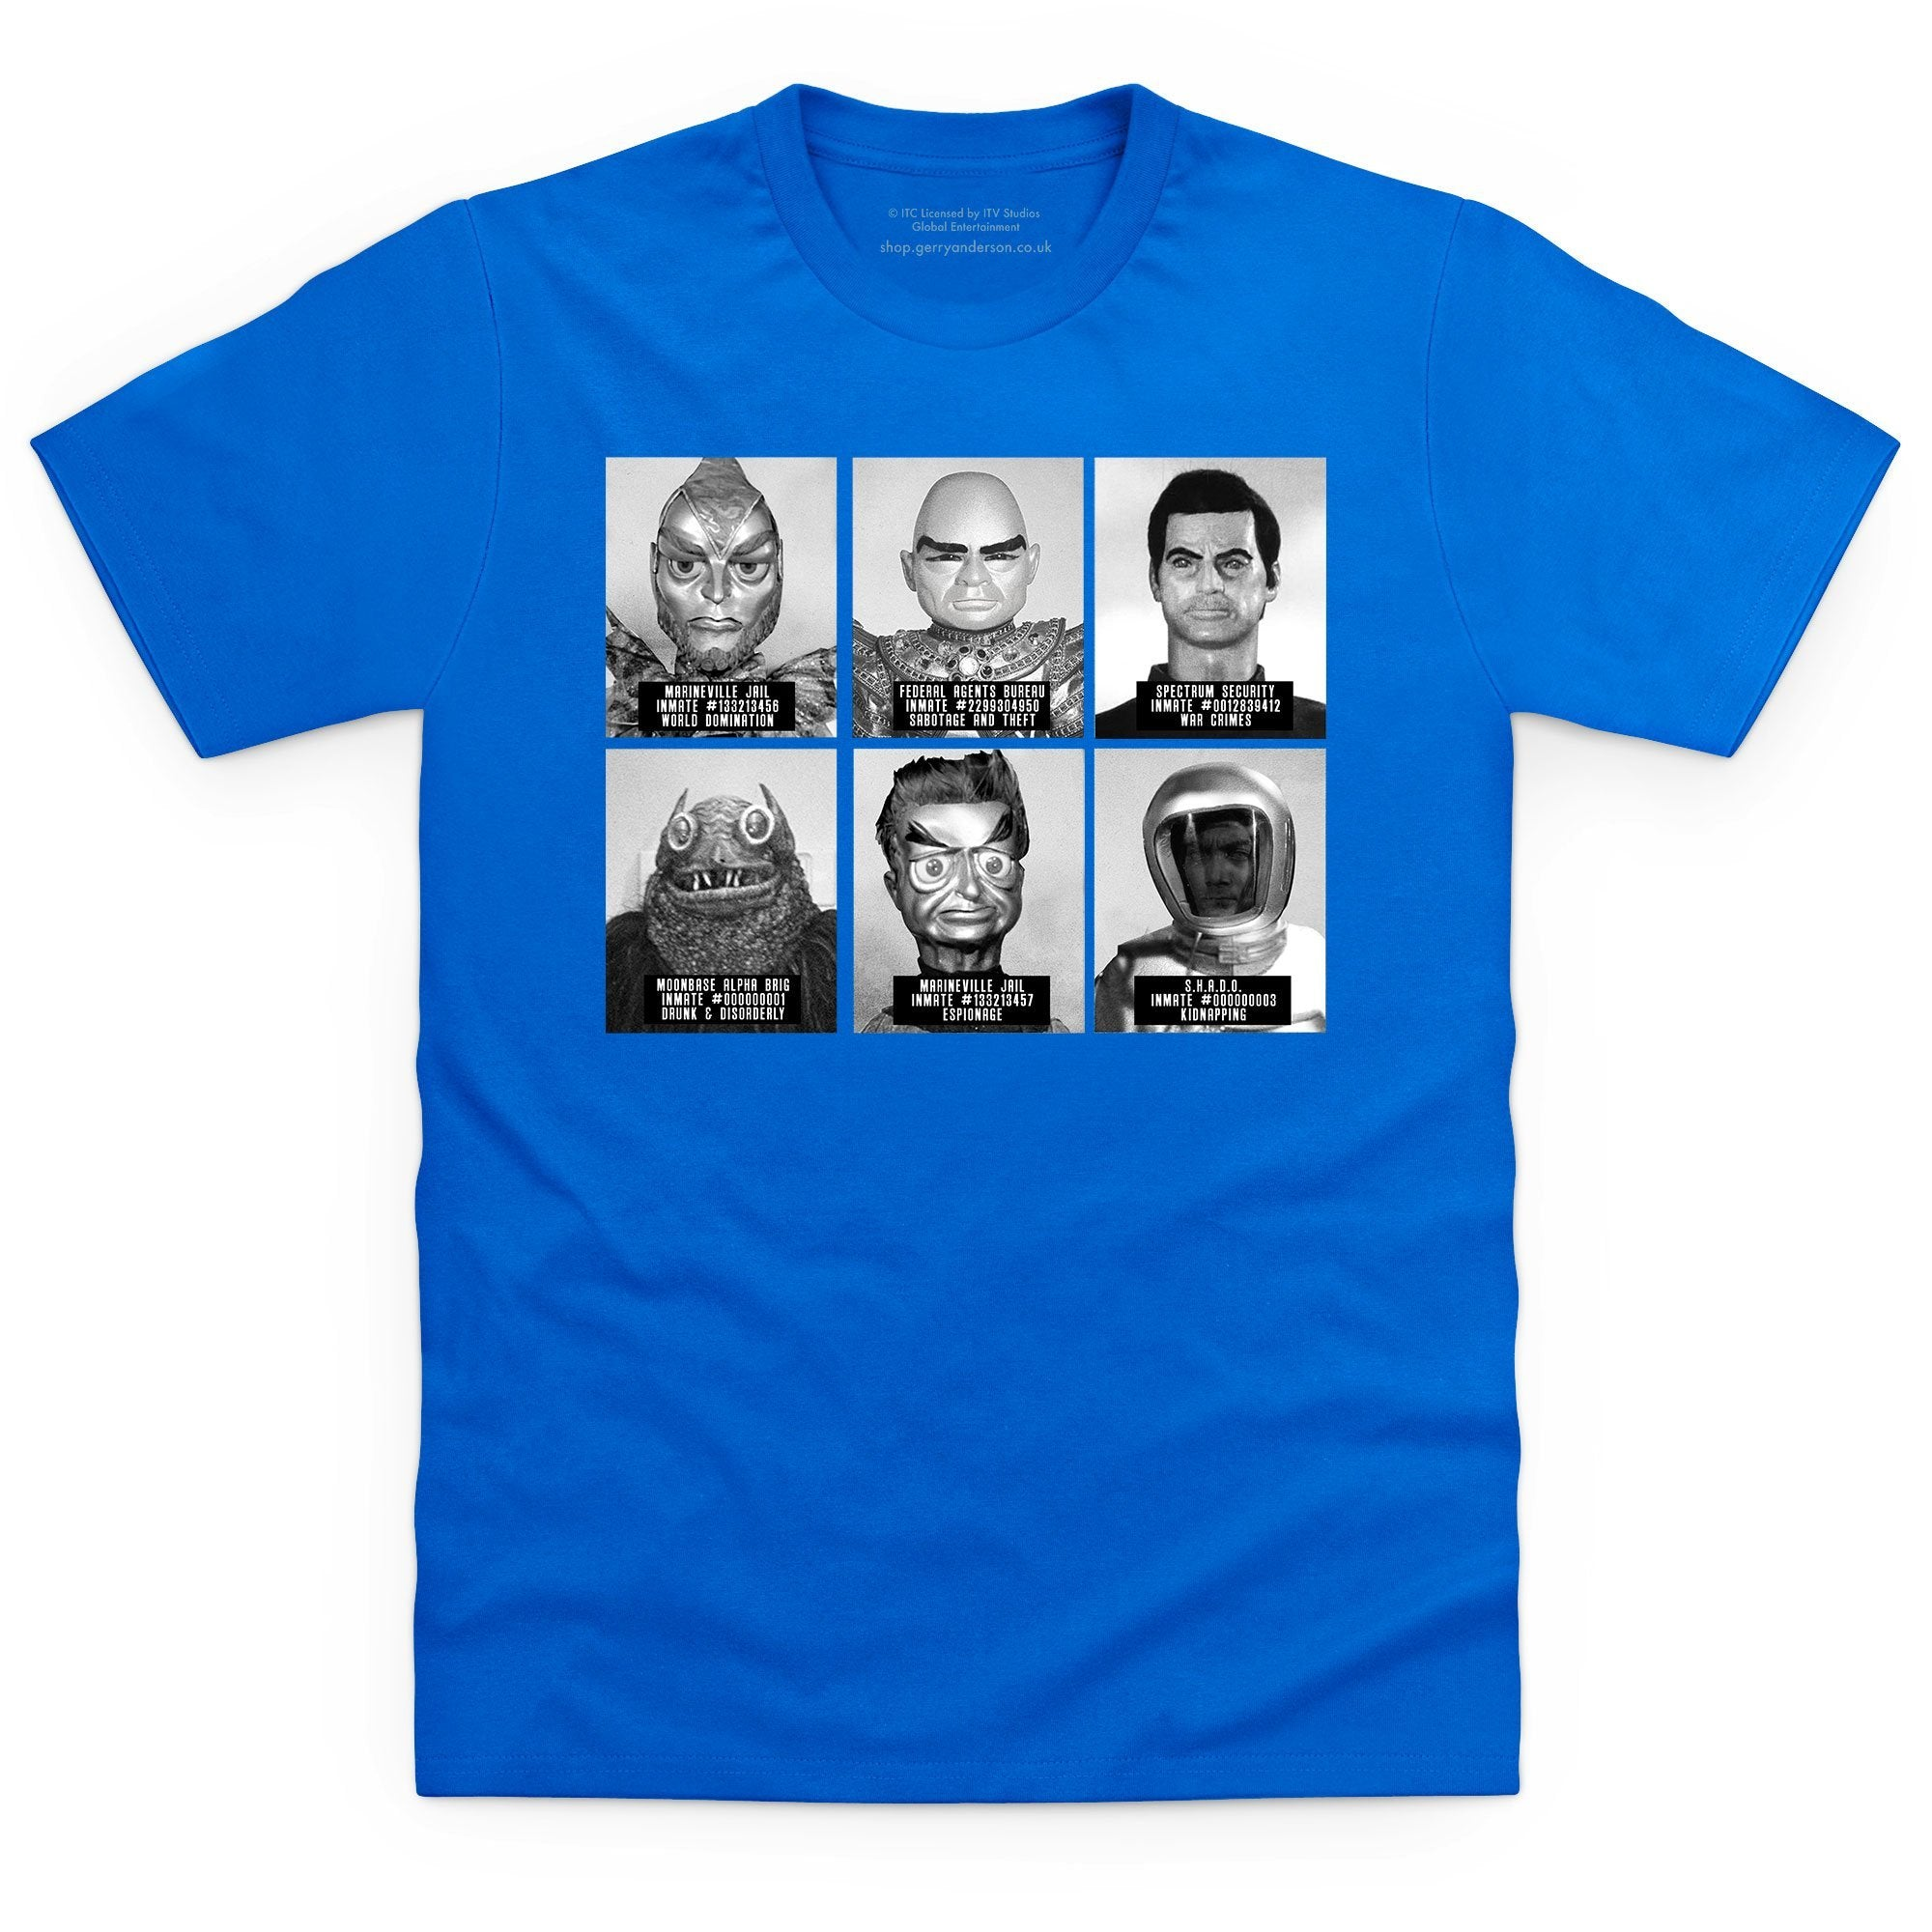 Suspects and Villains Men's T-shirt [Official & Exclusive] - The Gerry Anderson Store